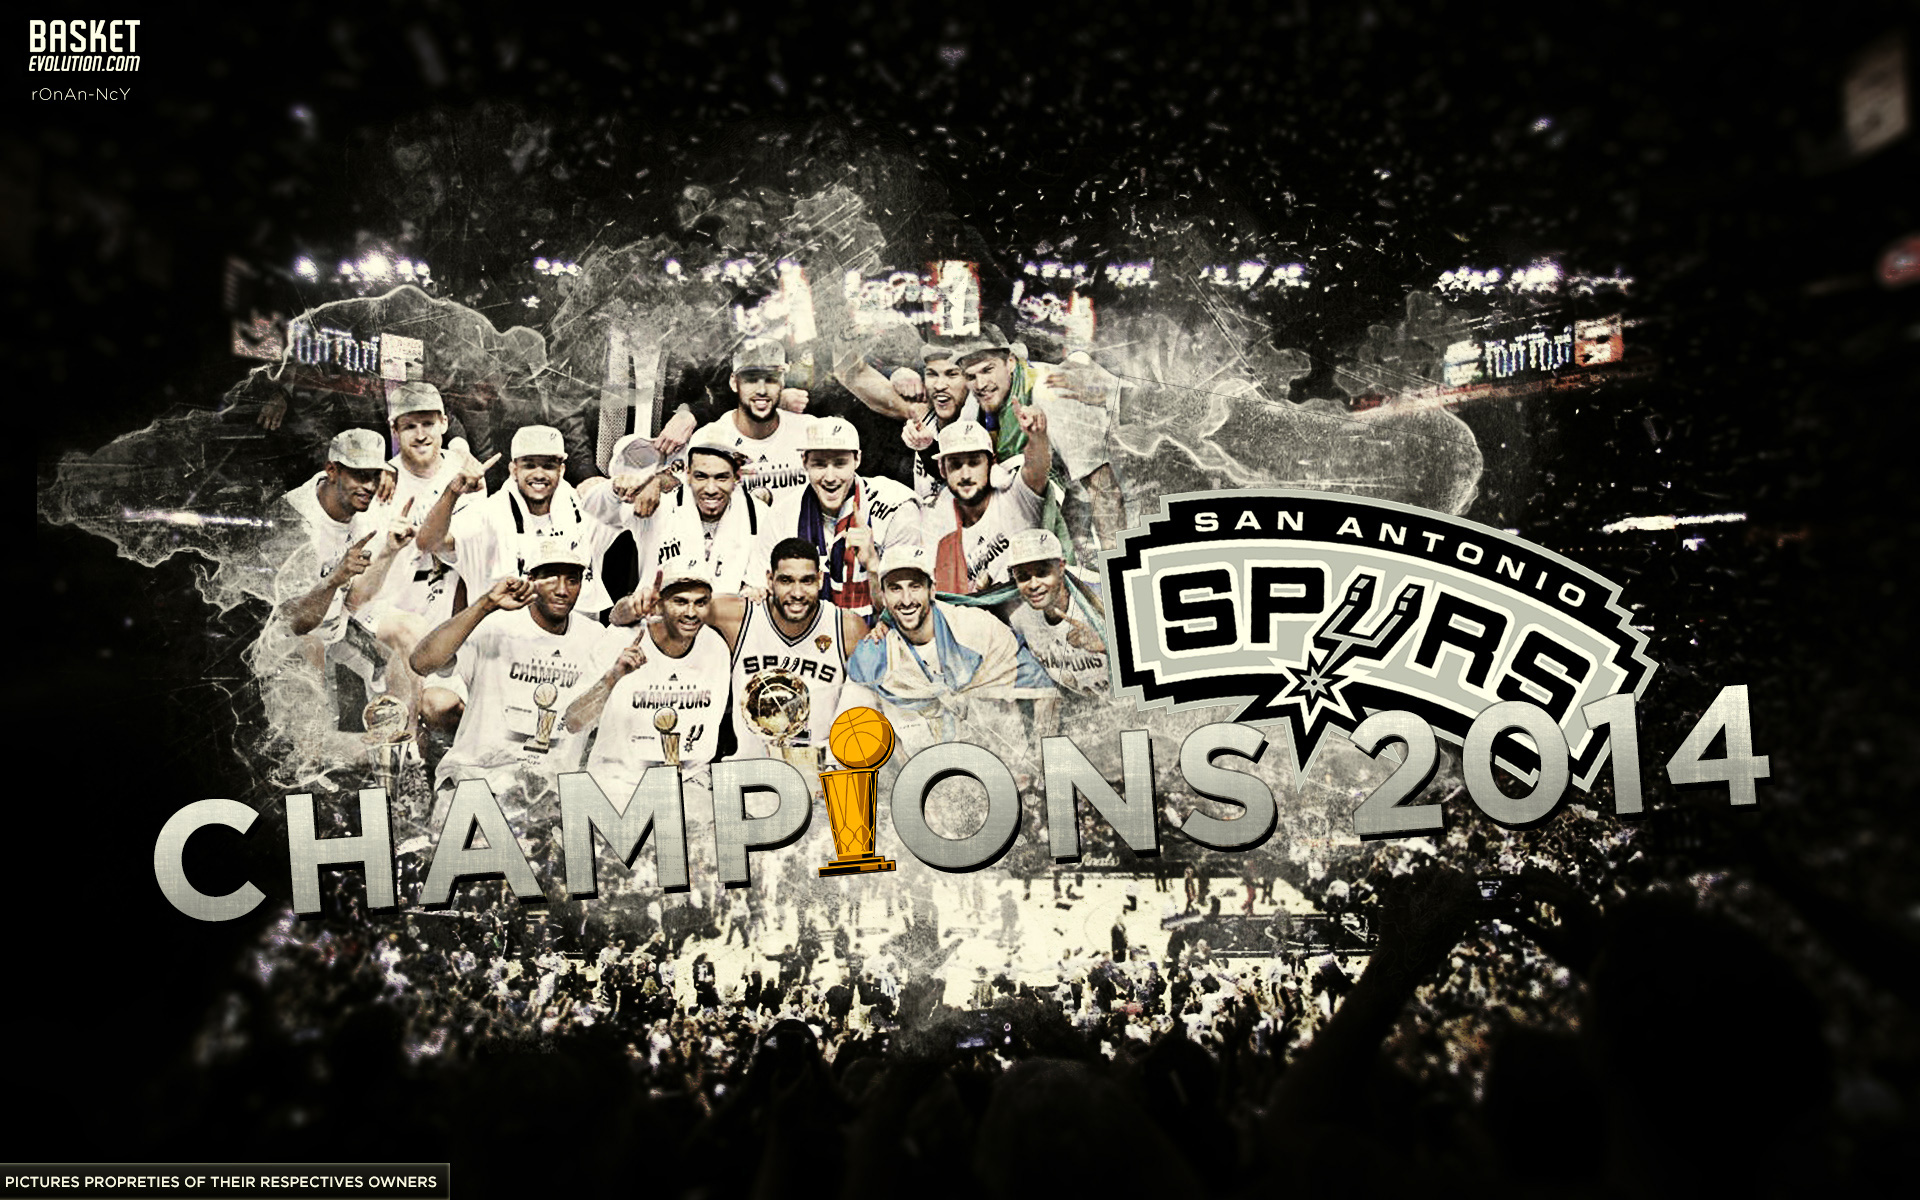 1920x1200 San Antonio Spurs Browser Themes, Wallpapers and More - Brand Thunder